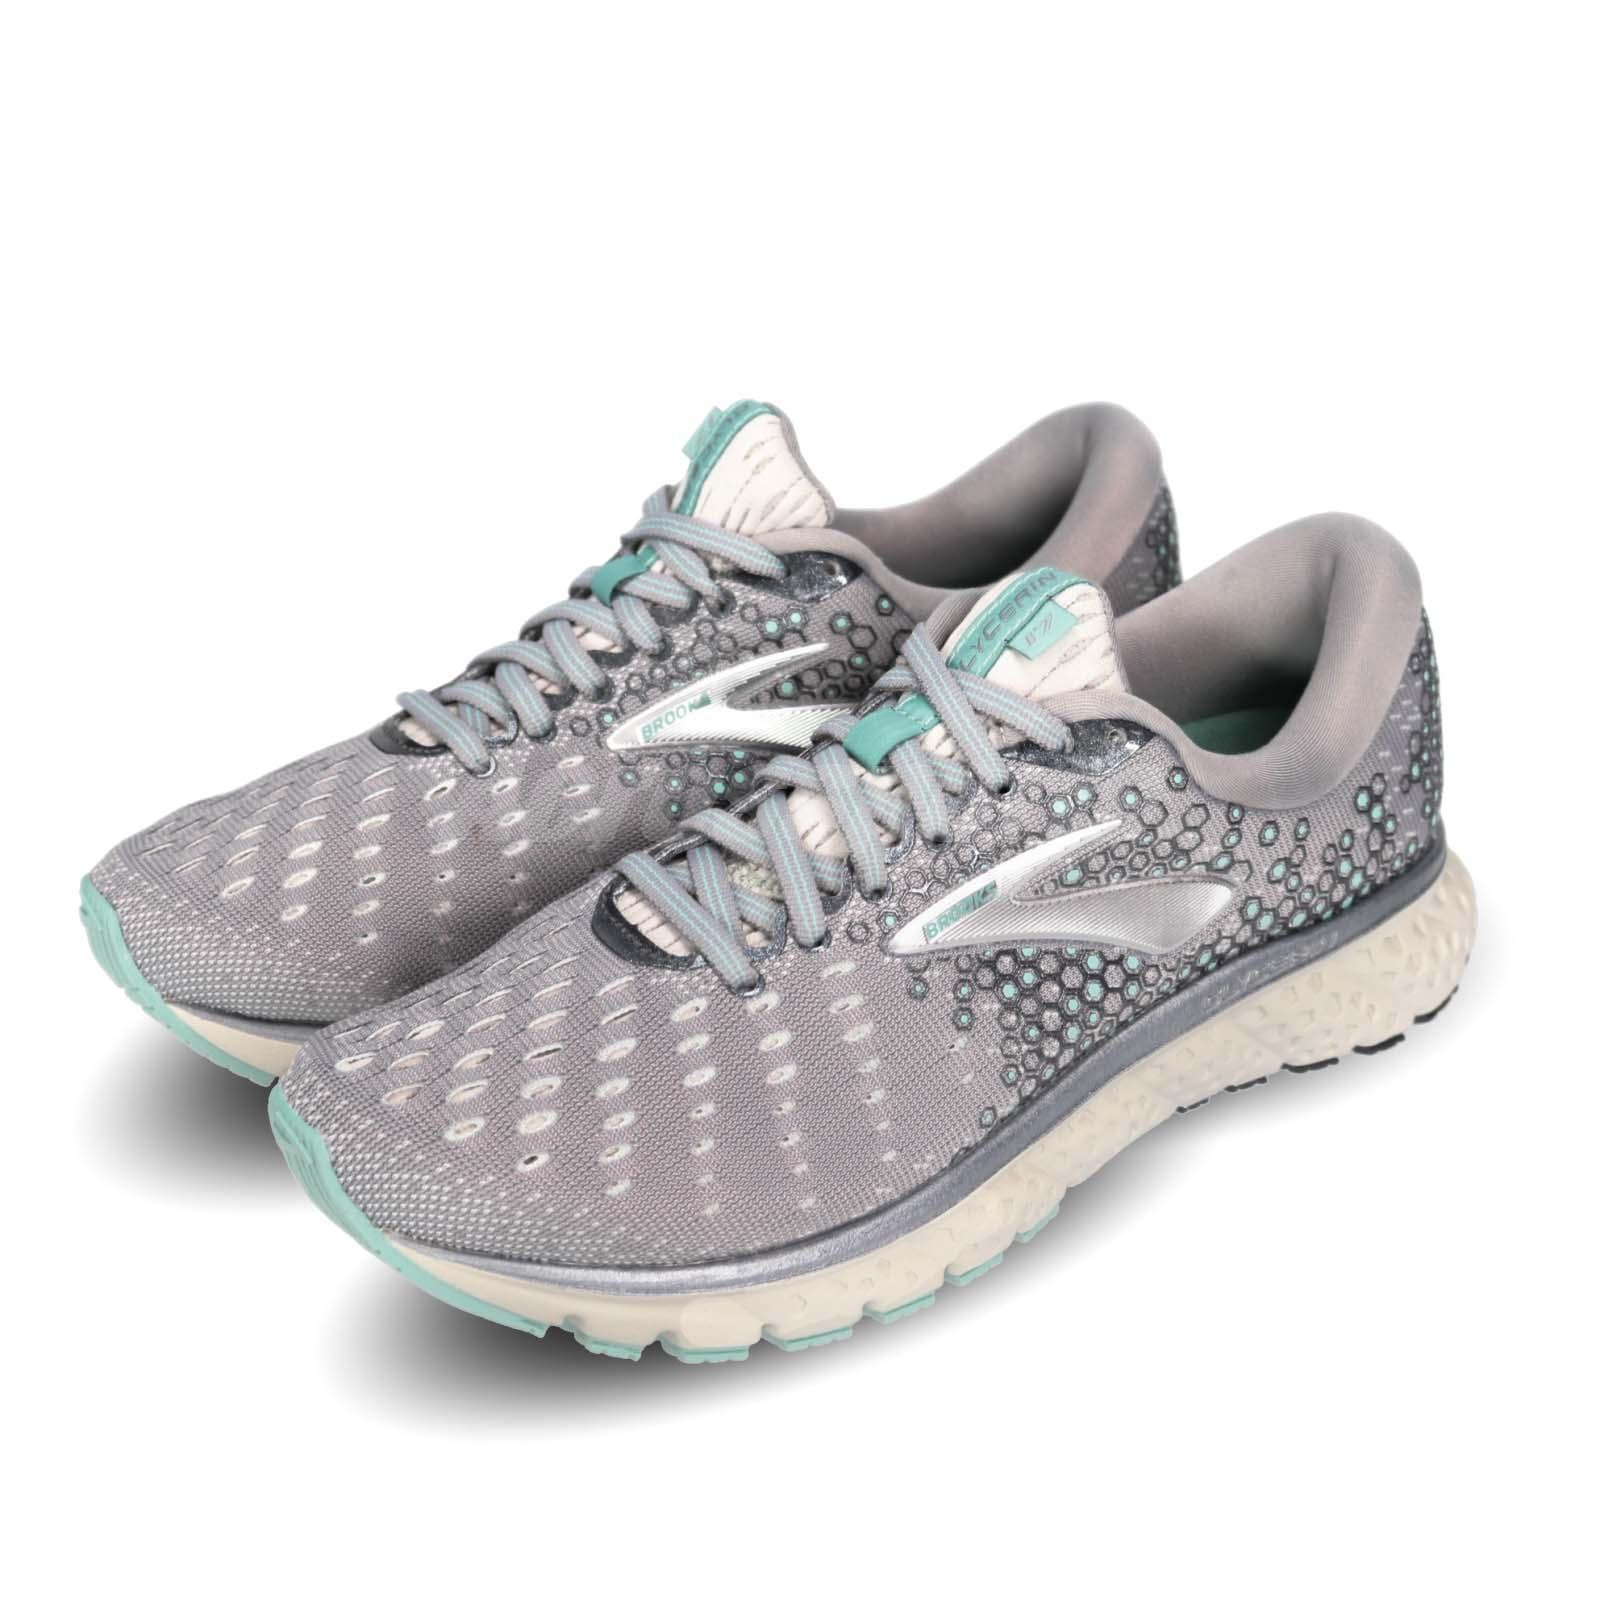 glycerin 17 brooks